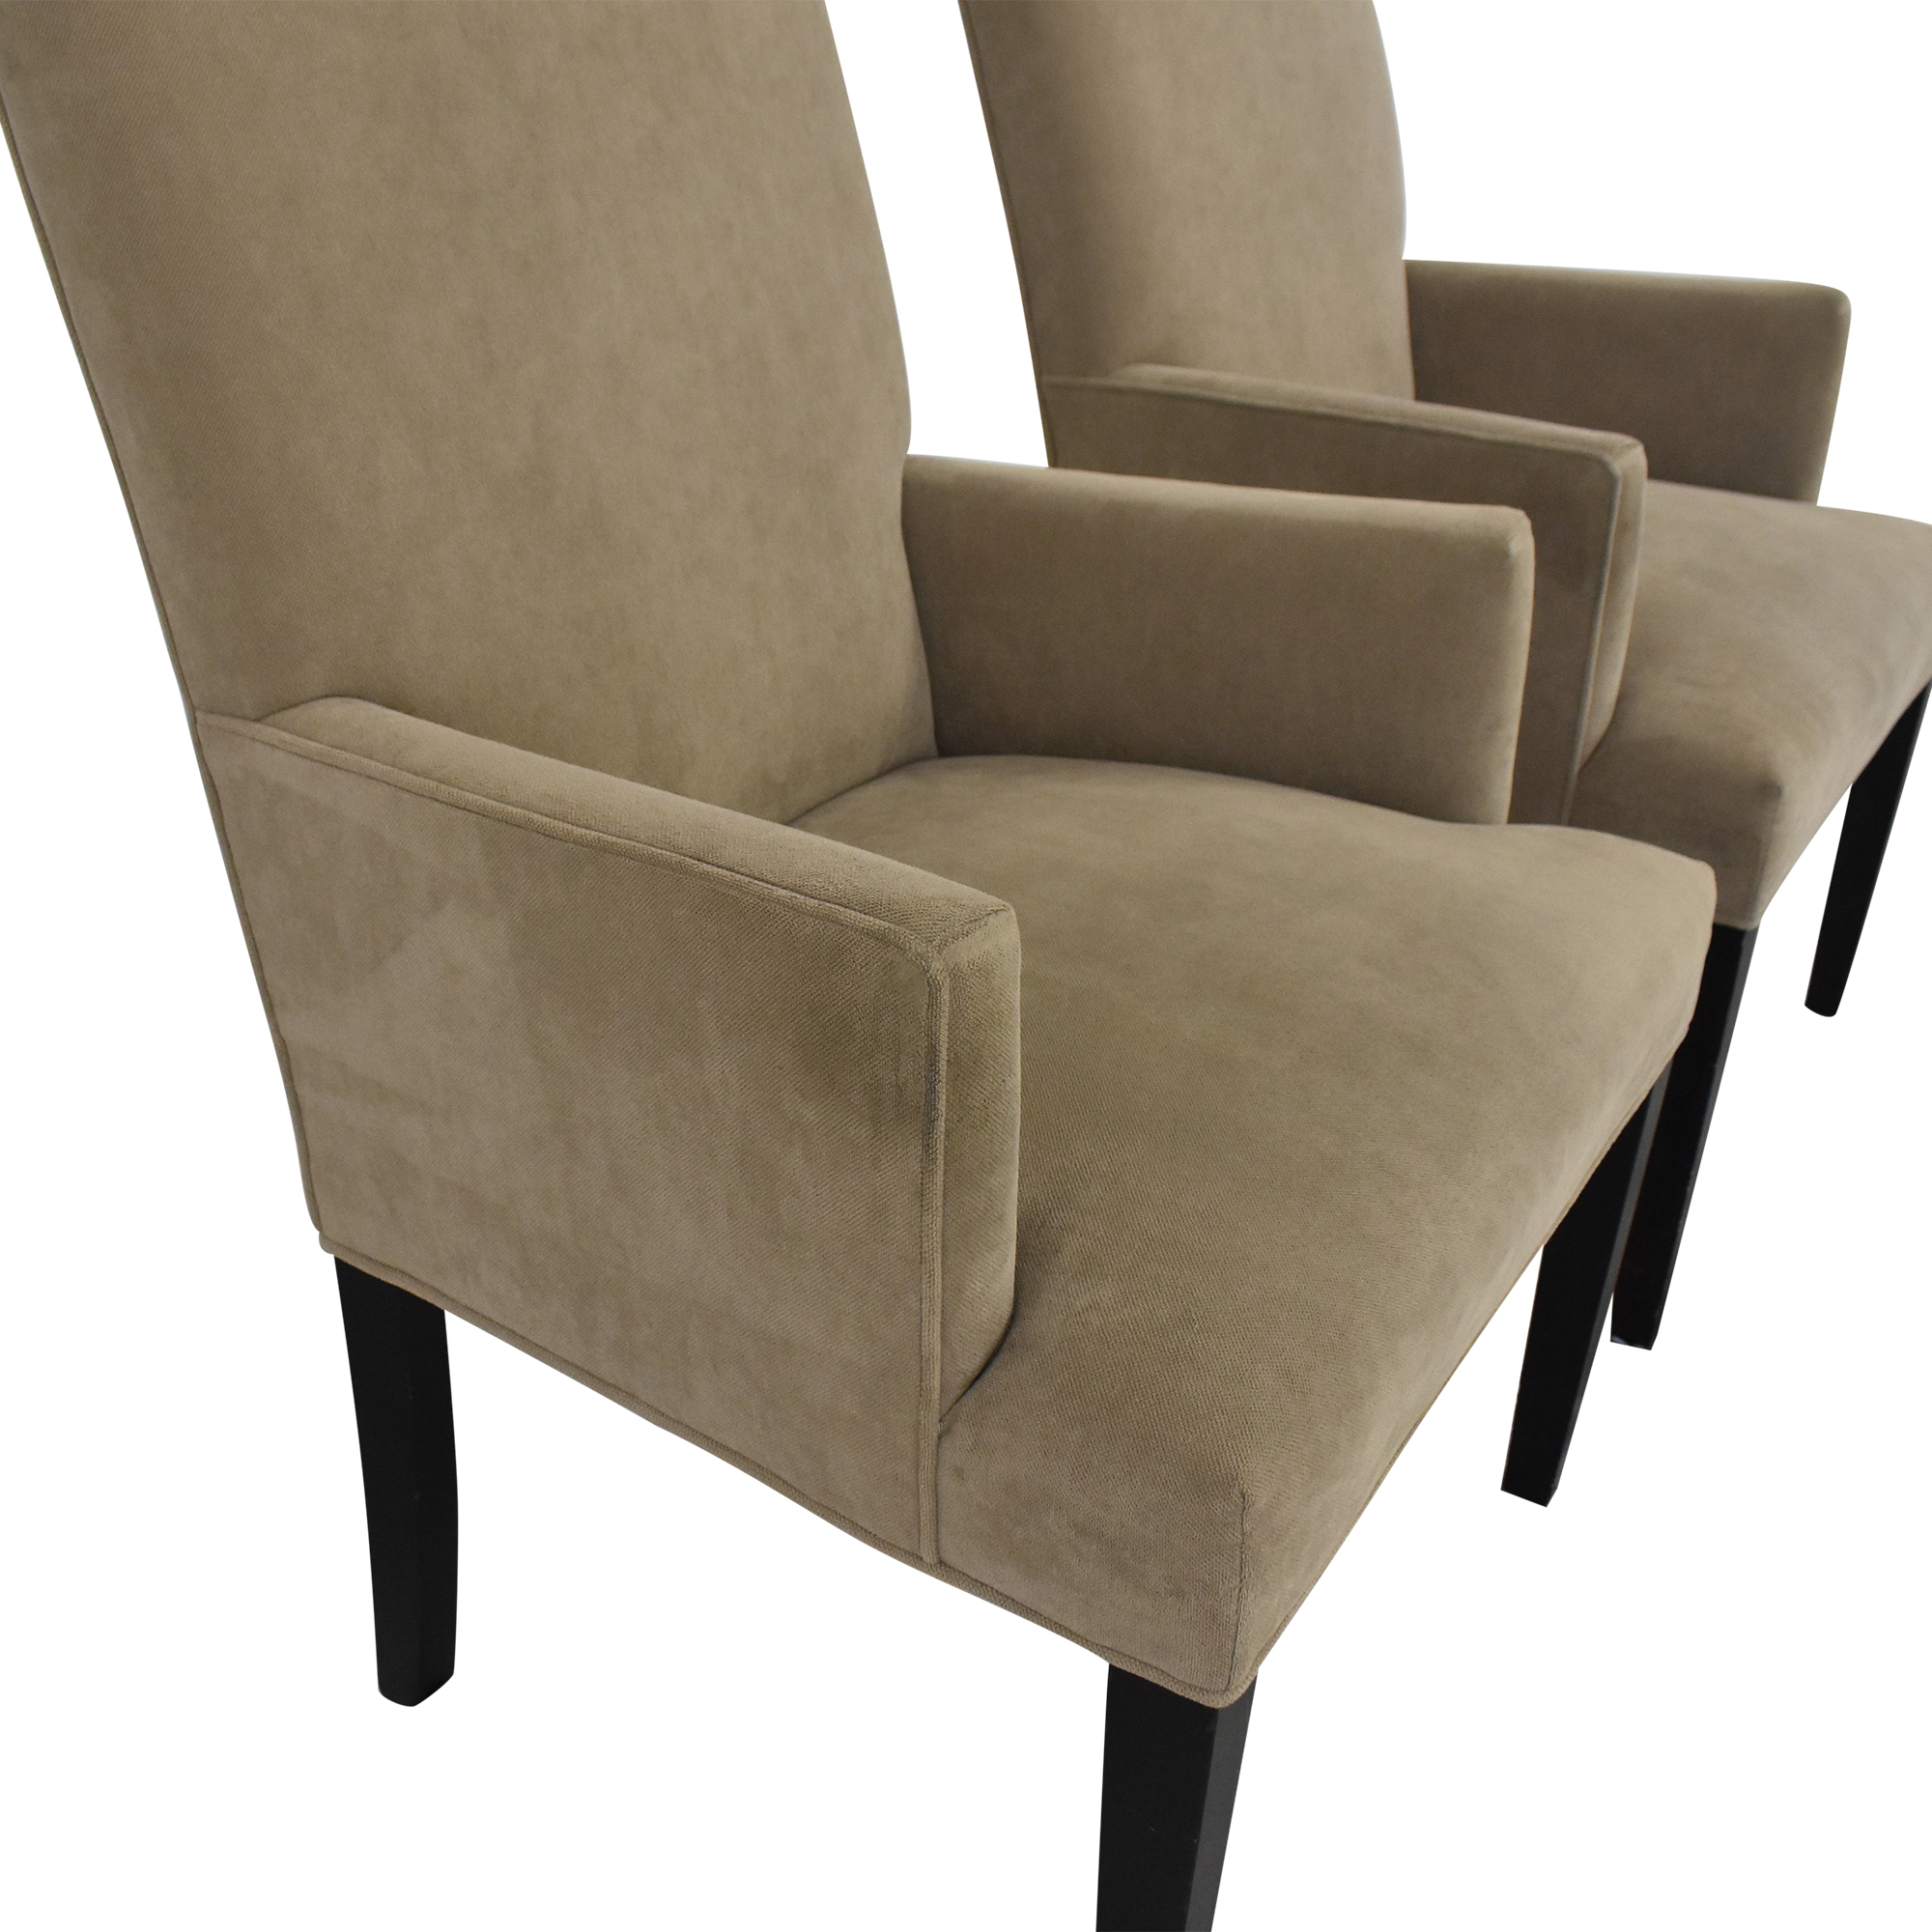 shop Crate & Barrel Upholstered Dining Chairs Crate & Barrel Chairs